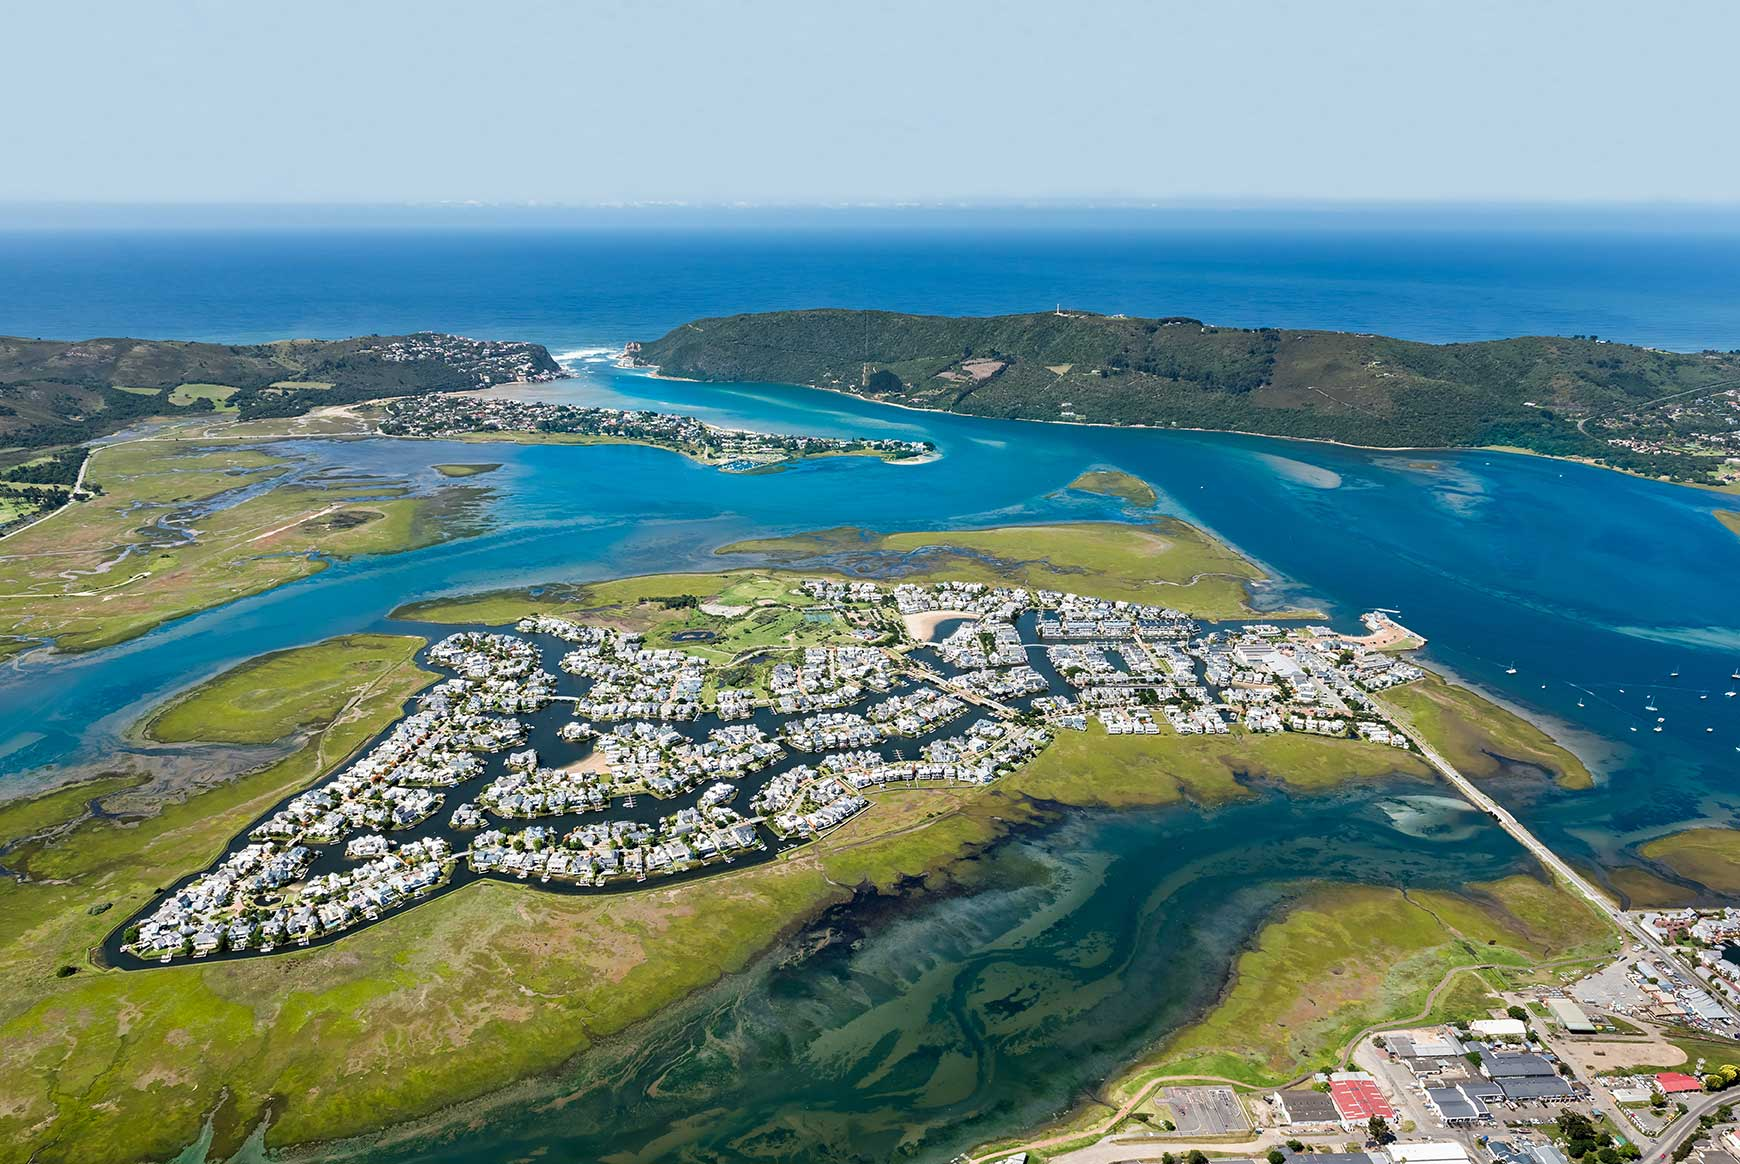 Thesen Islands: A family's commitment to turn land into a lifestyle